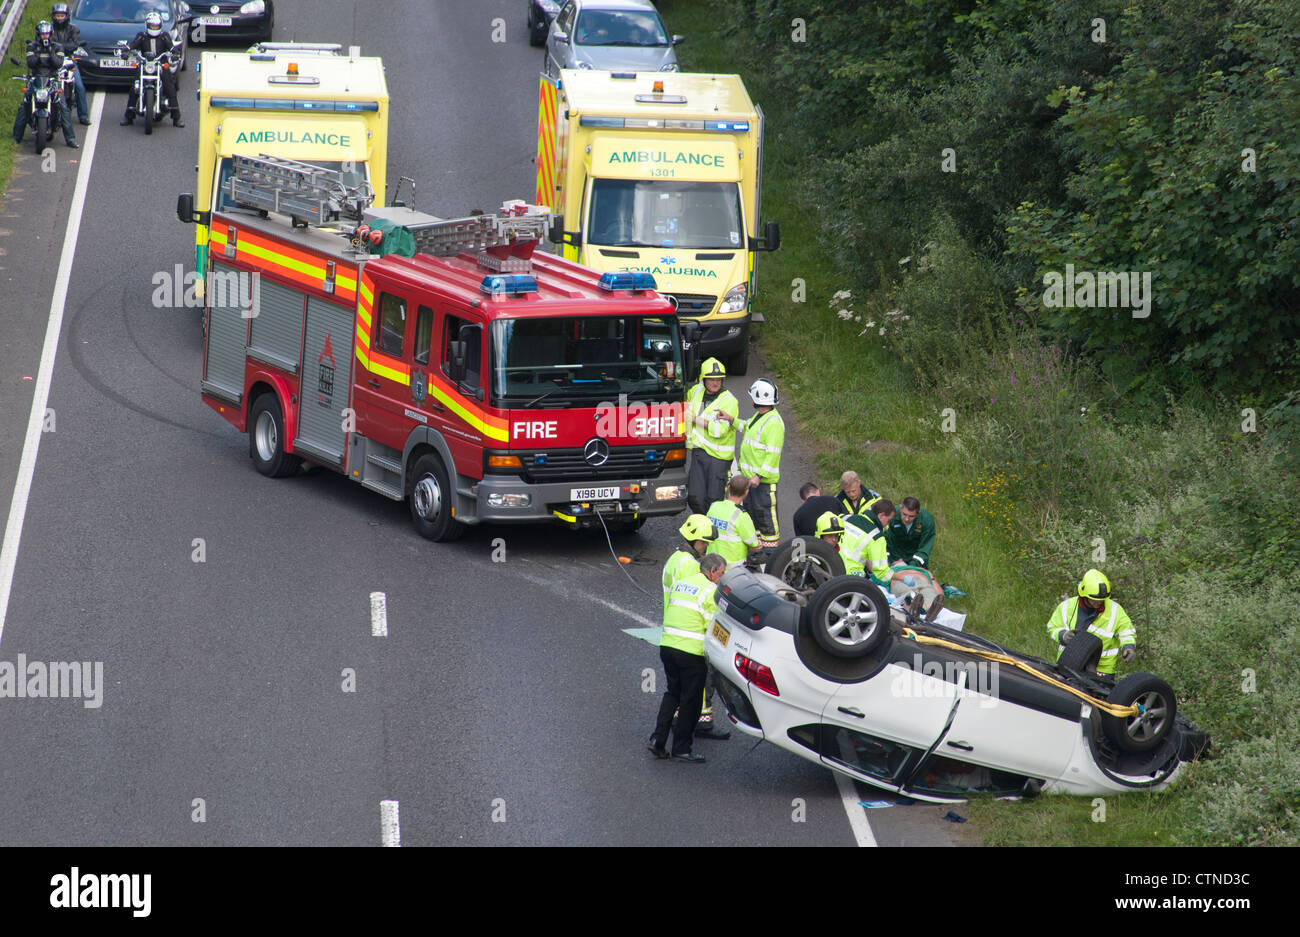 Accident scene on the A30 dual carriageway in Cornwall, where a car ...